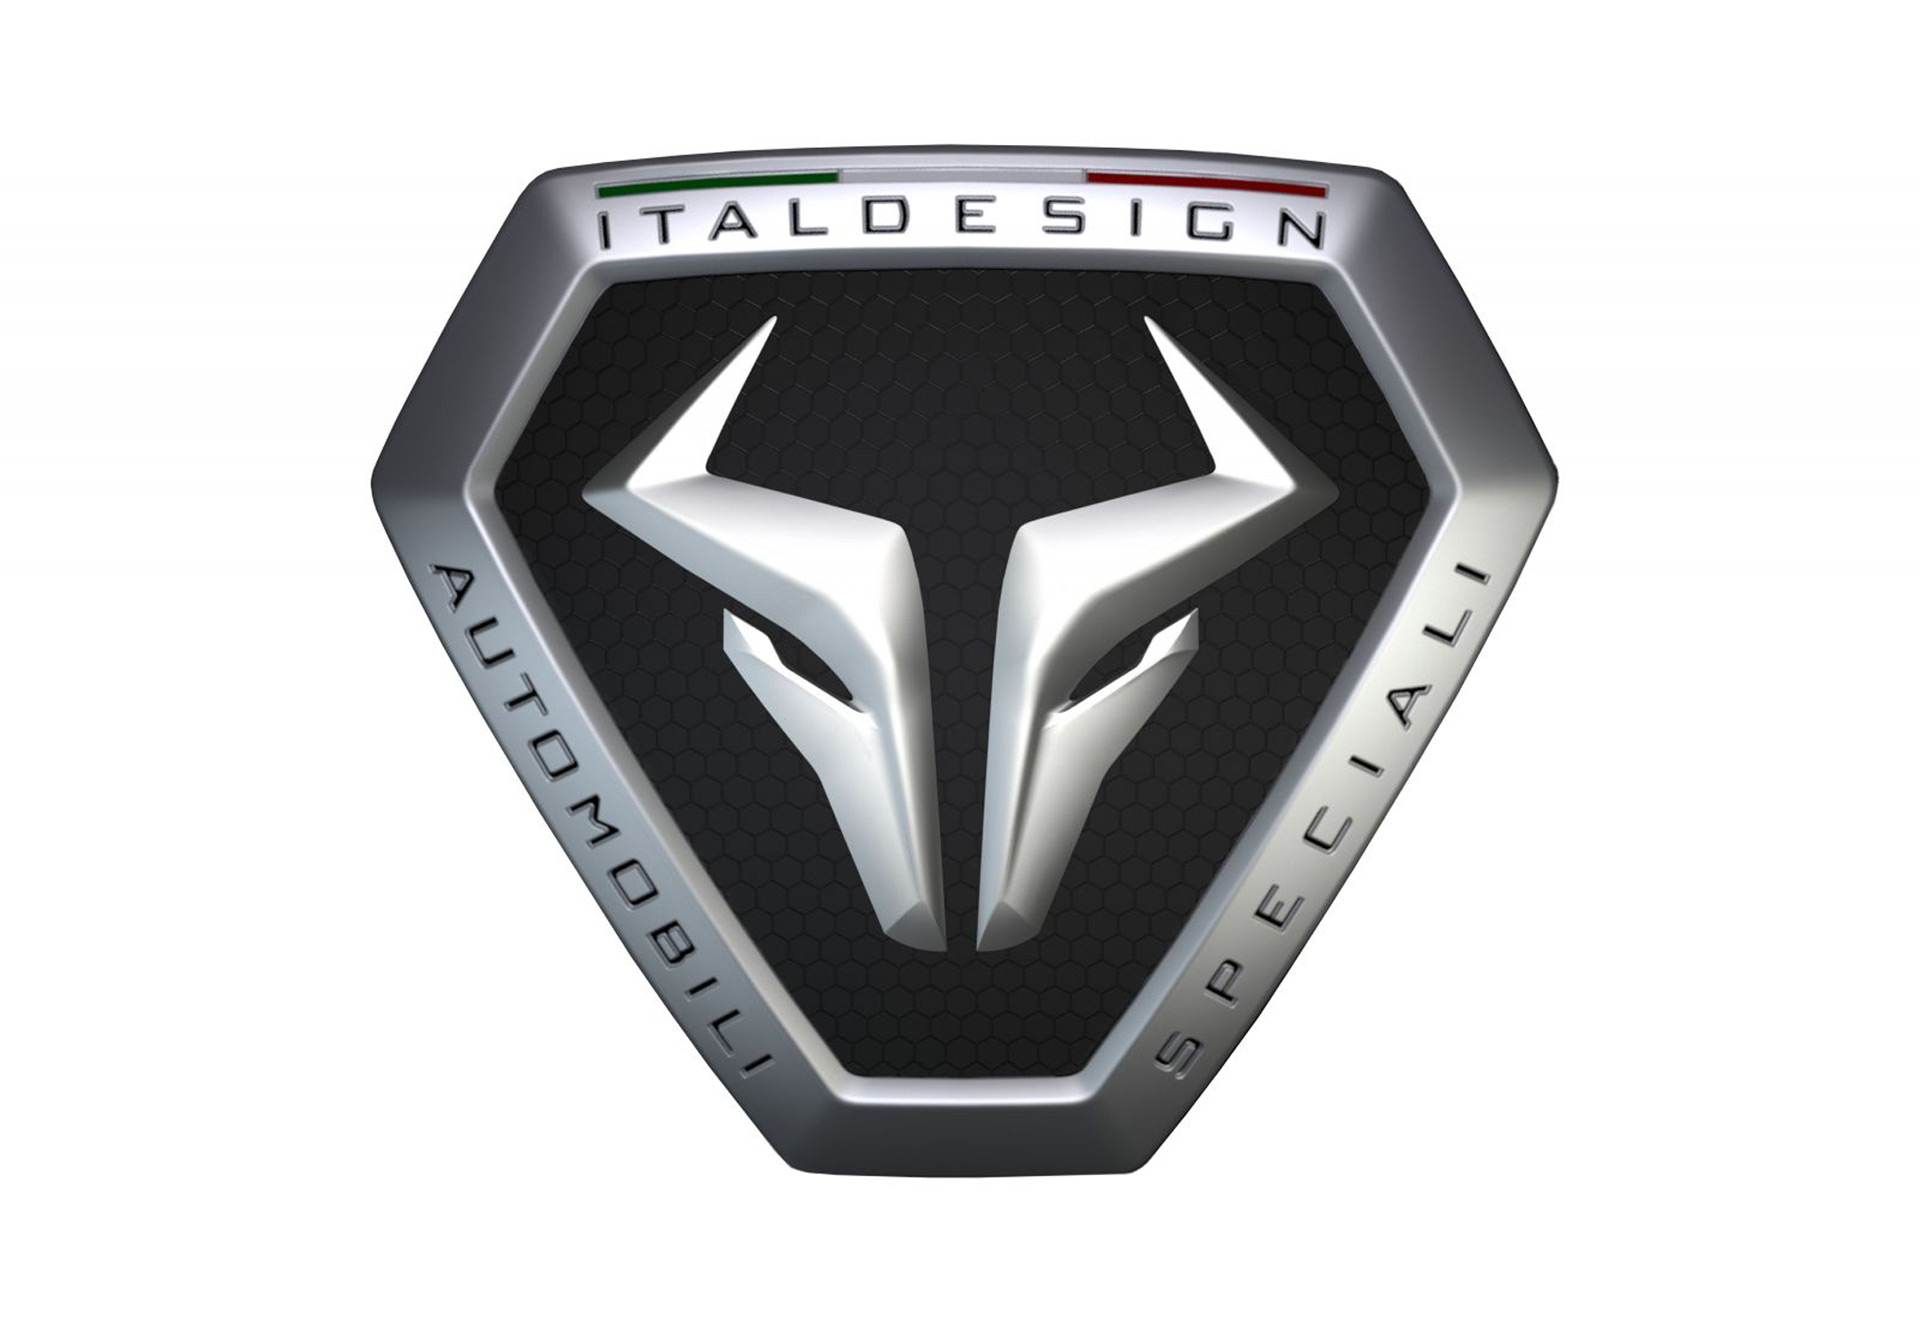 Italdesign Reveals New Brand Logo For Road Car Division